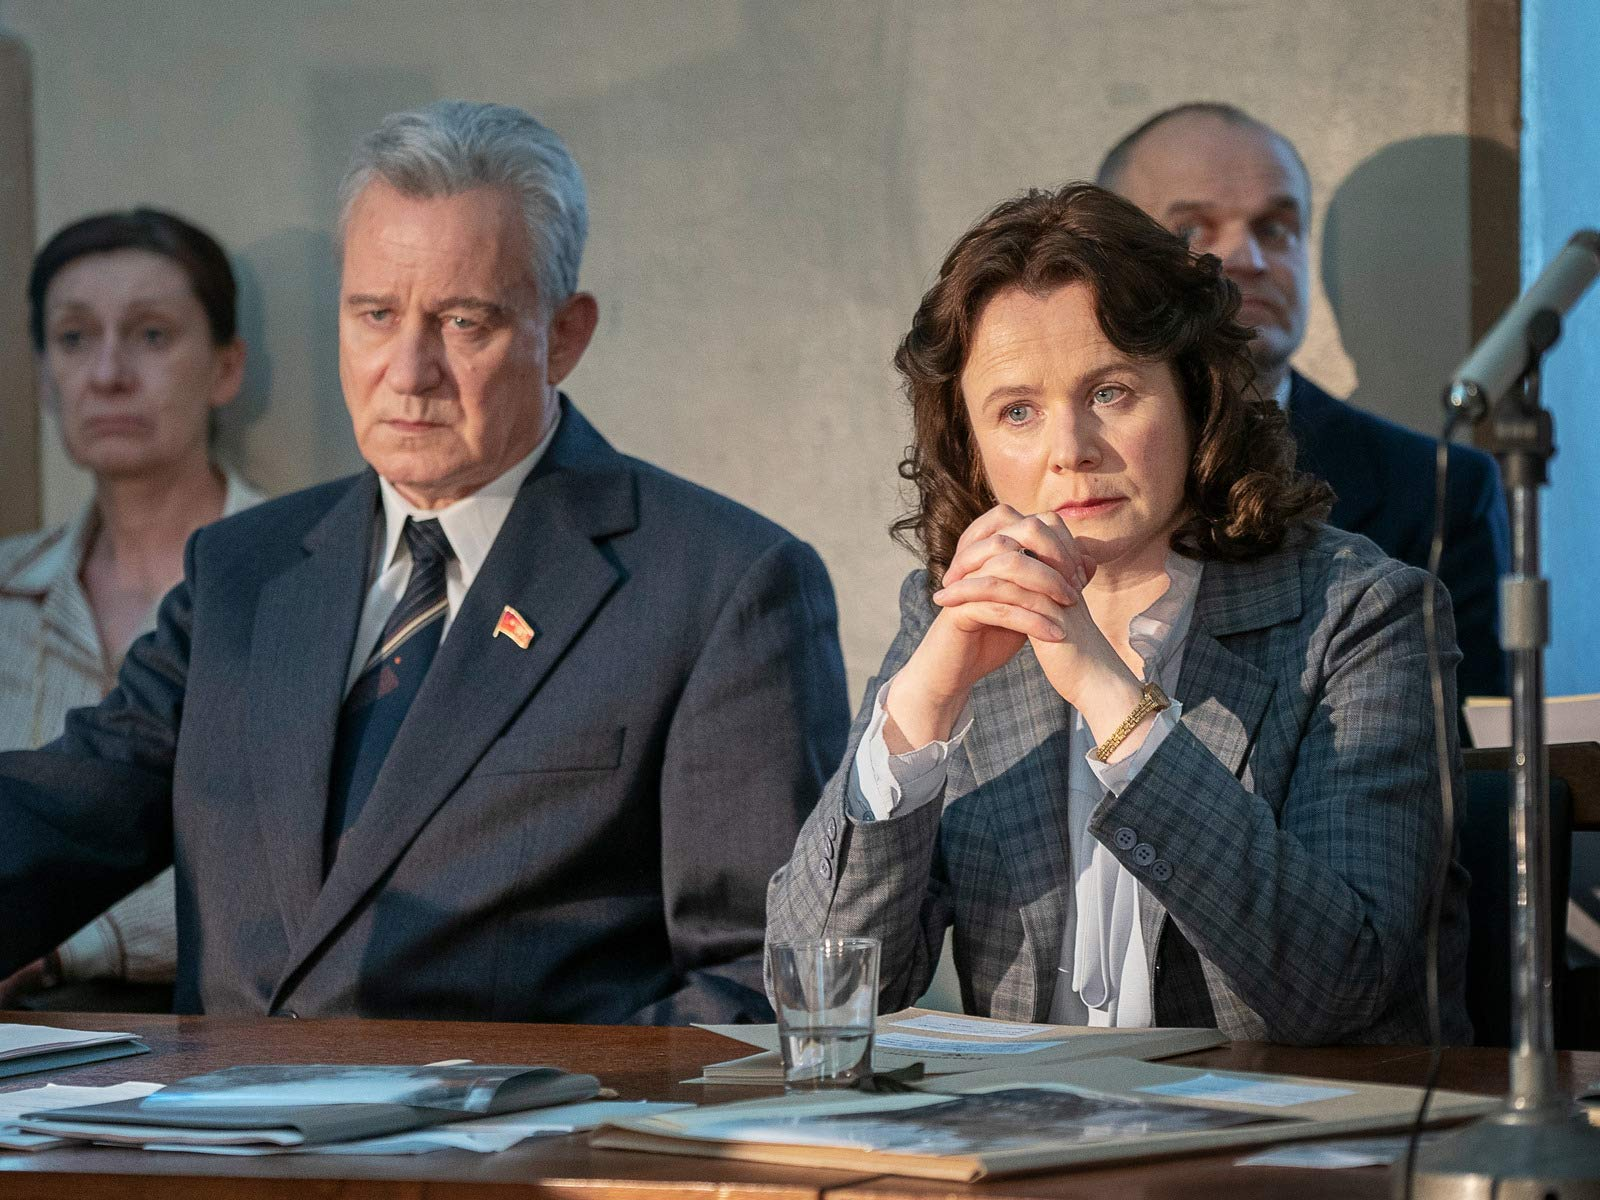 Watch Chernobyl Season 1 Prime Video